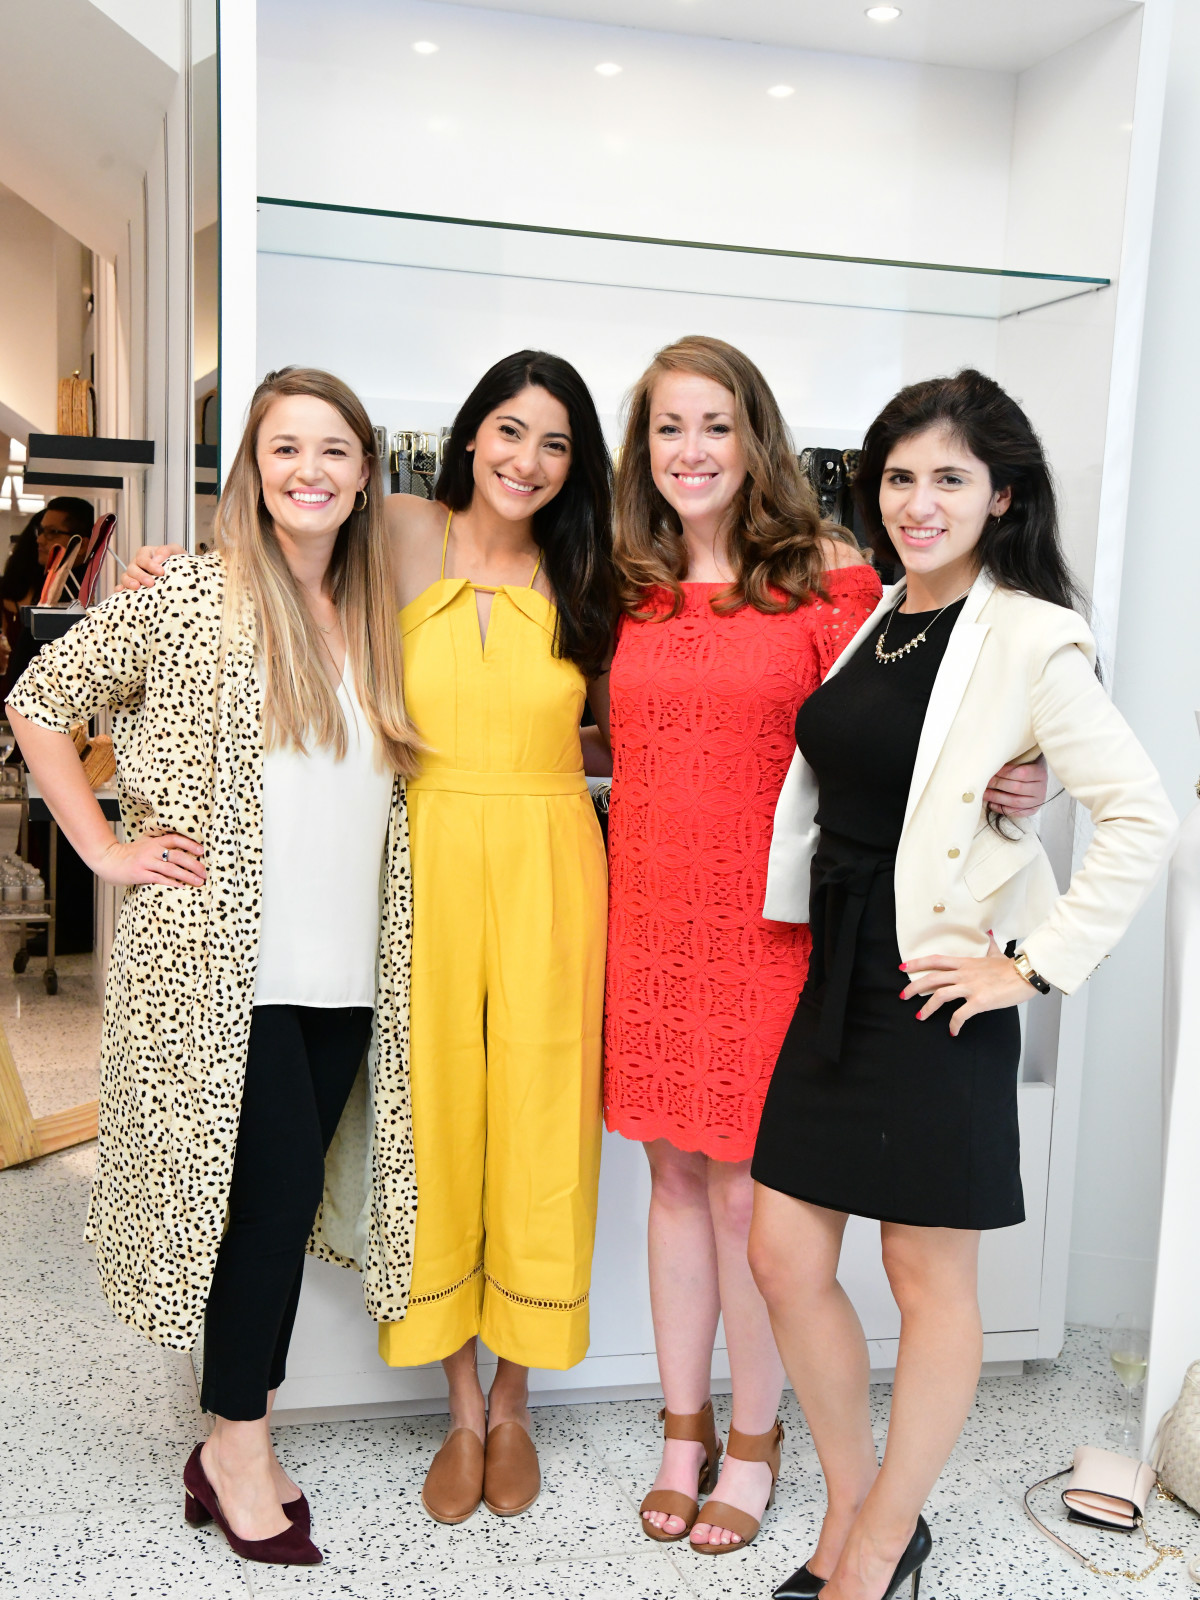 Summer Soiree Dress for Success WOW Tootsies Julia Russell, Dalia Steichen, Jessie Mehlhoff, Julia Valencia